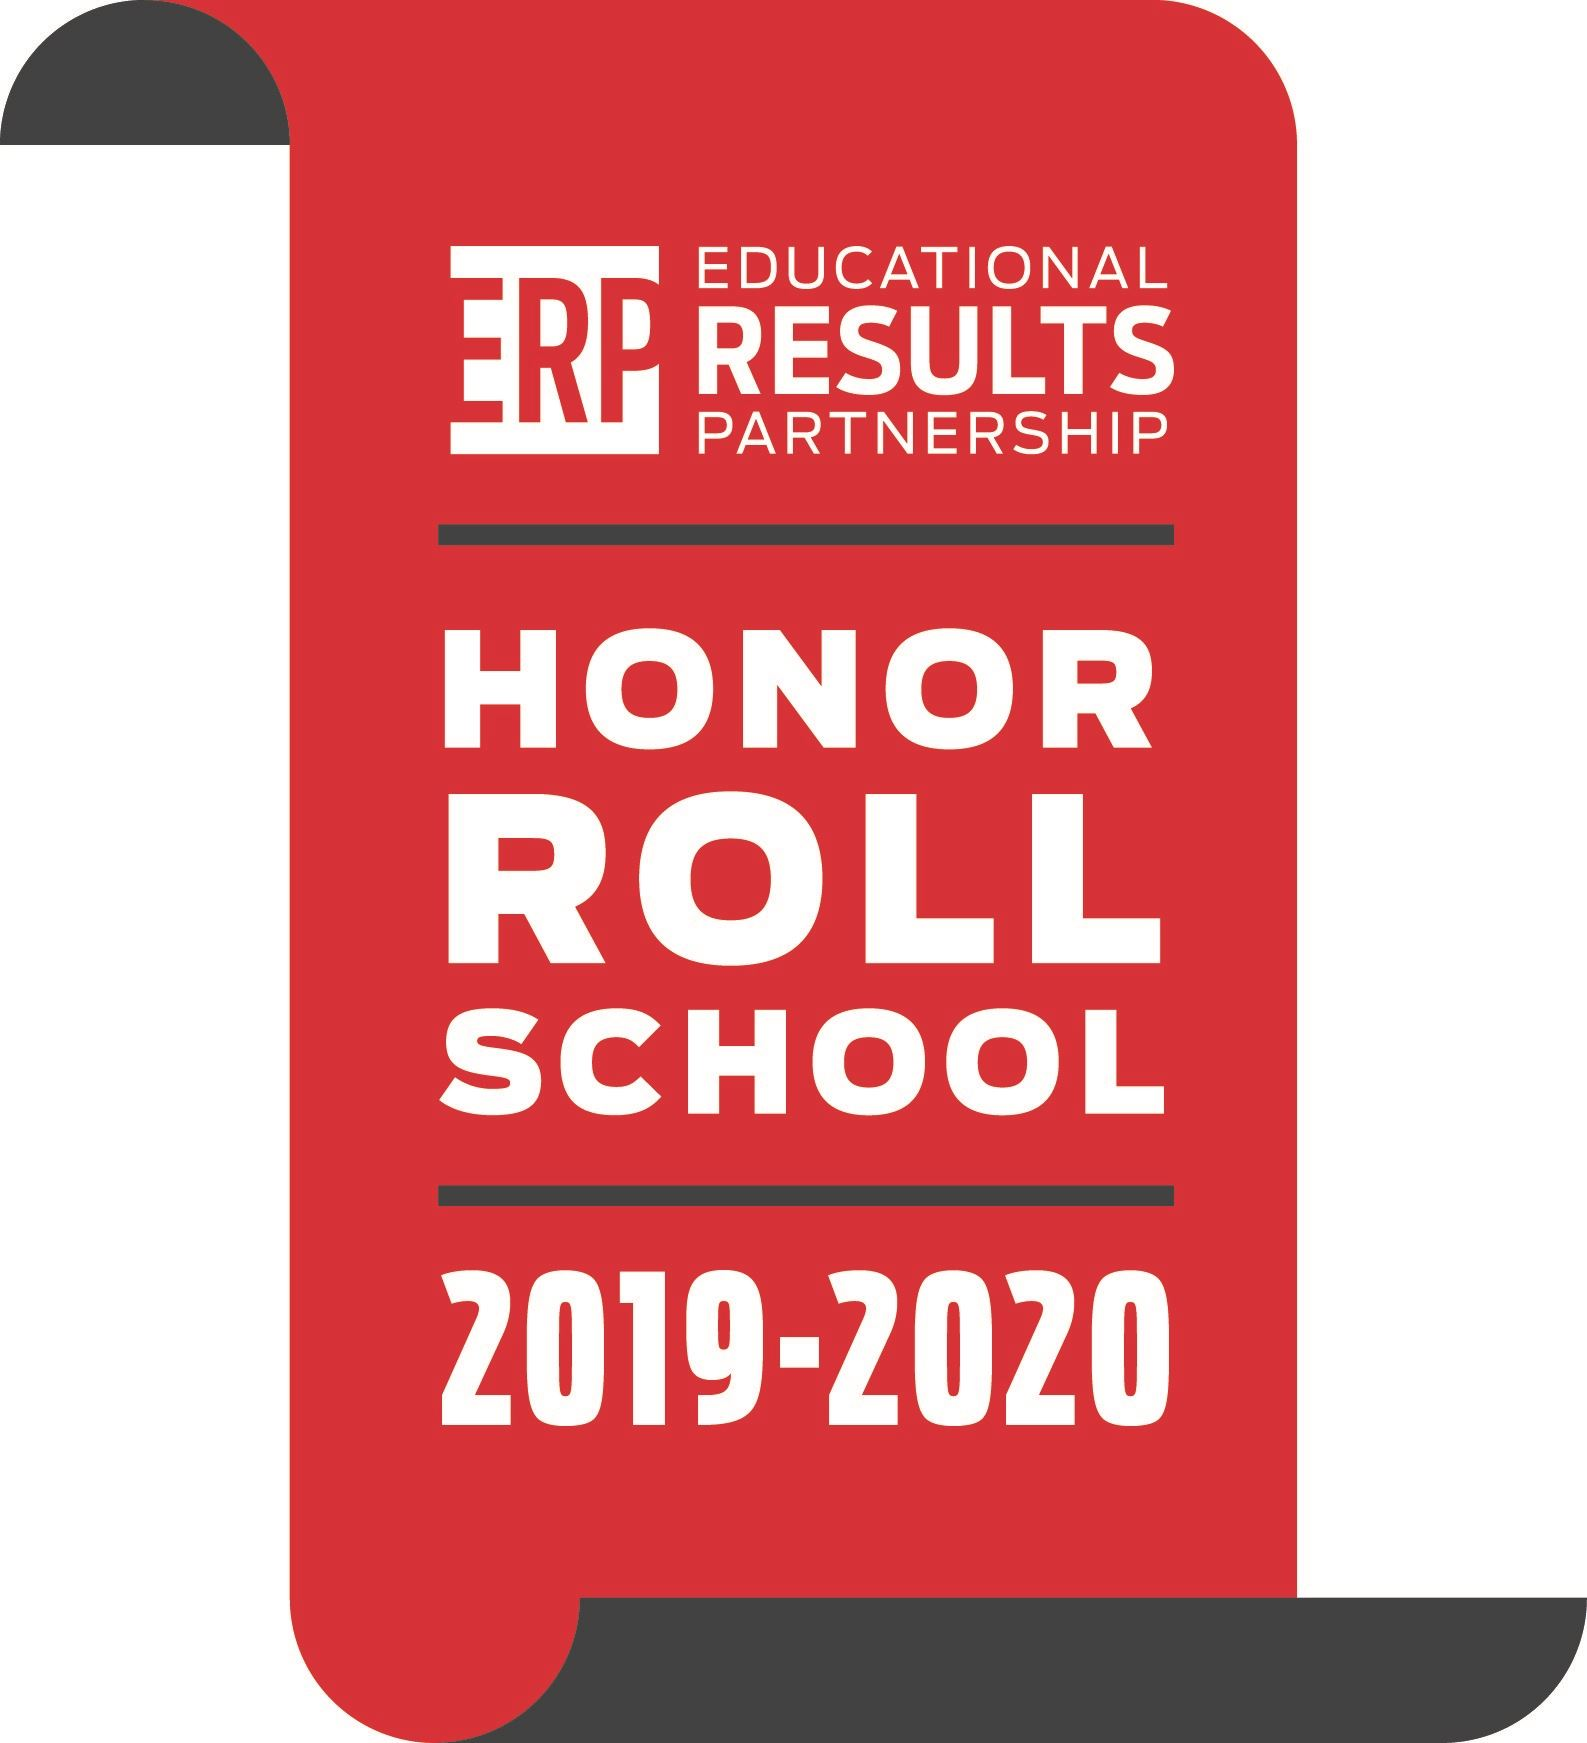 The Rice School named an Honor Roll school by Educational Results Partnership